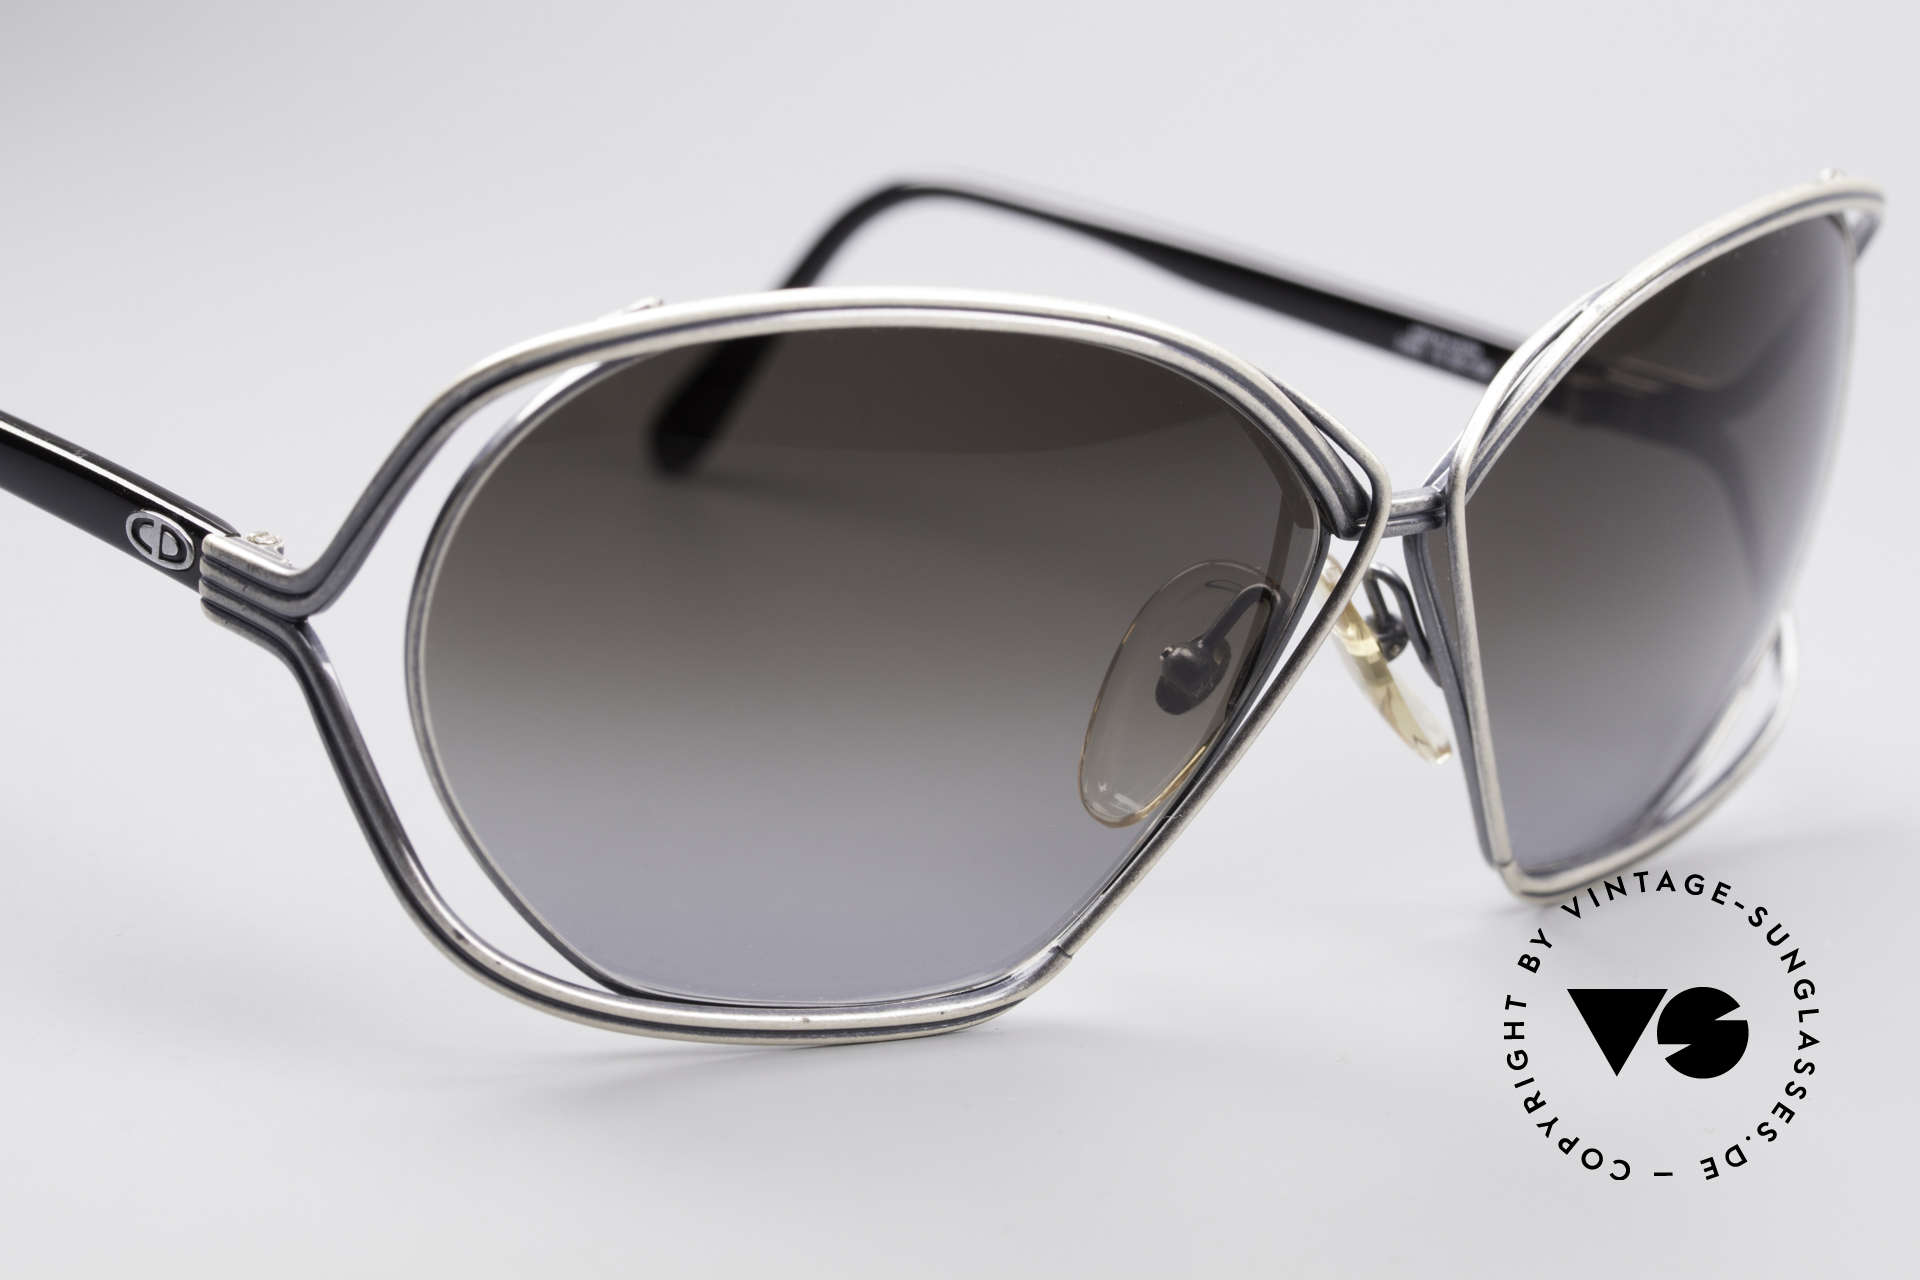 Christian Dior 2499 Ladies Sunglasses 80's, new old stock (like all our rare Chr. Dior sunglasses), Made for Women